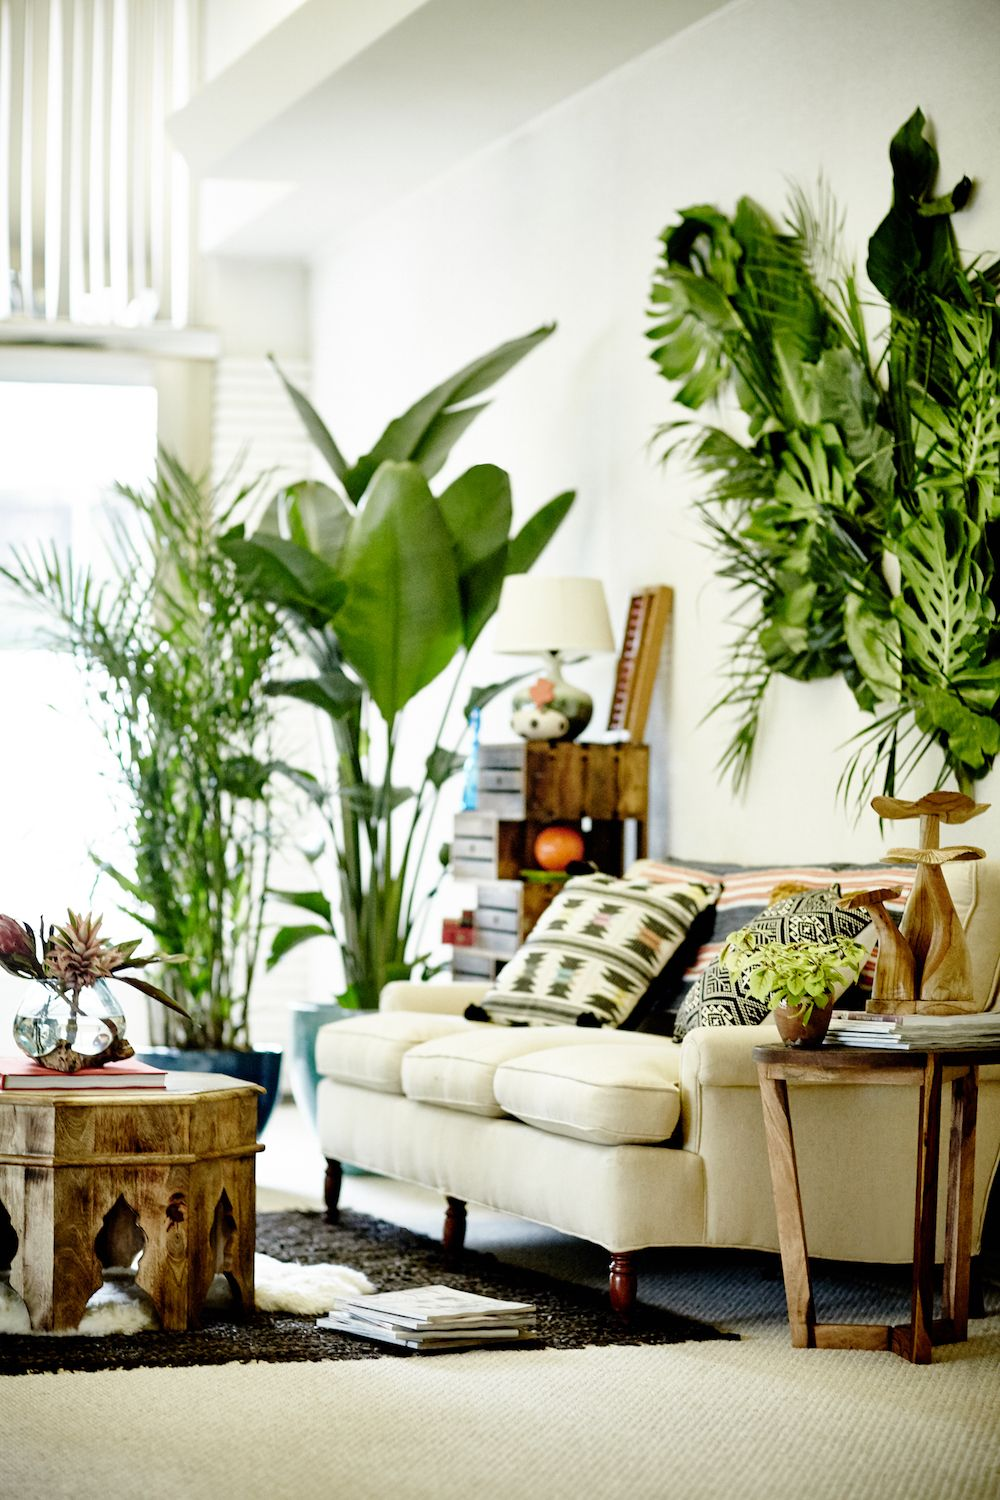 Interiors / Home Styling